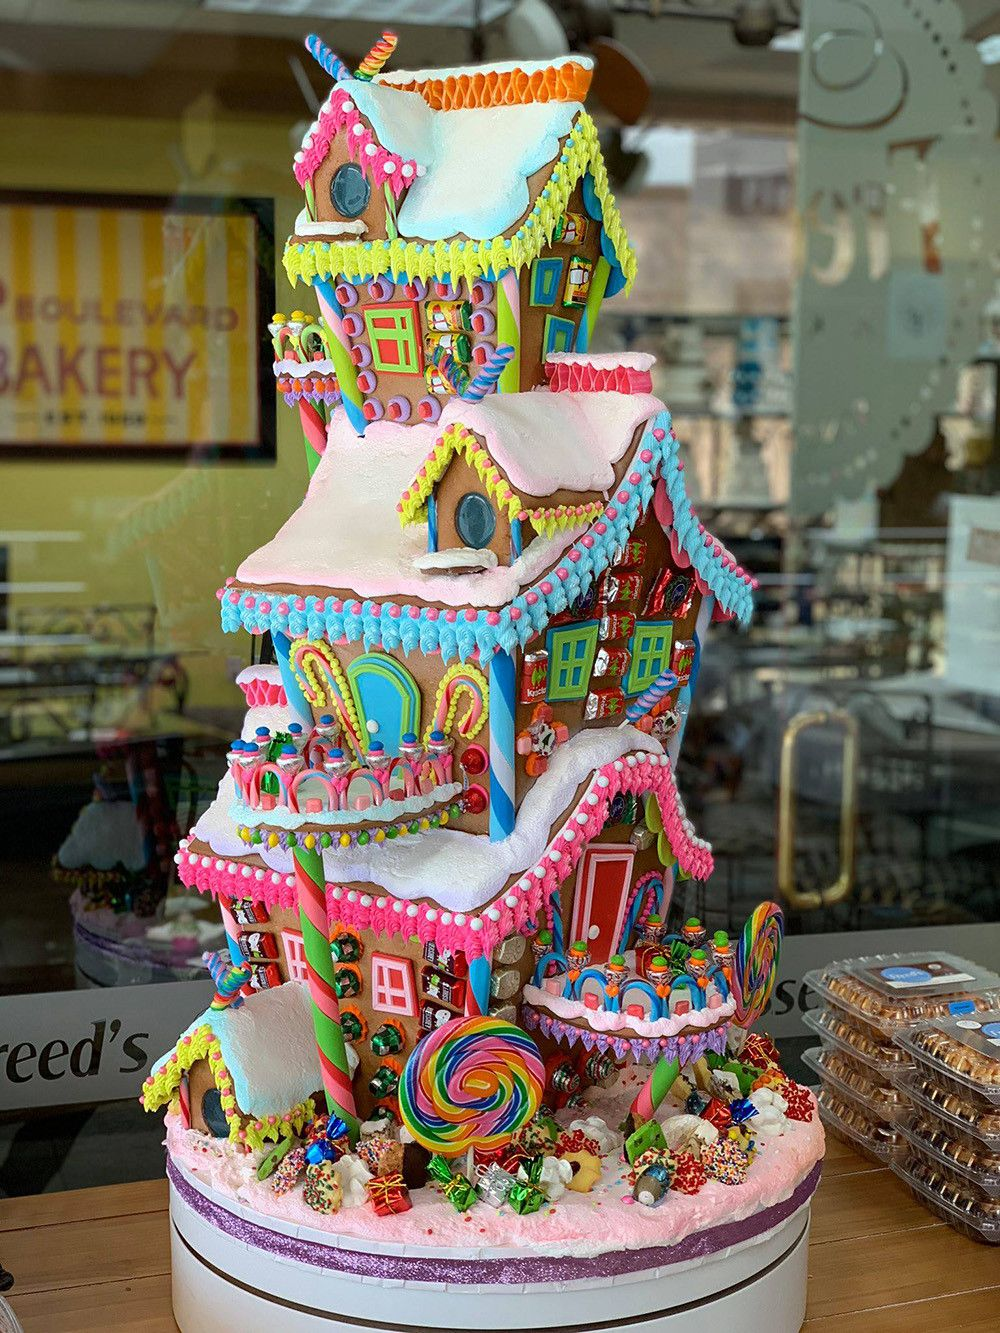 Gingerbread House Inspiration (Top 10) | Sugar Geek Show